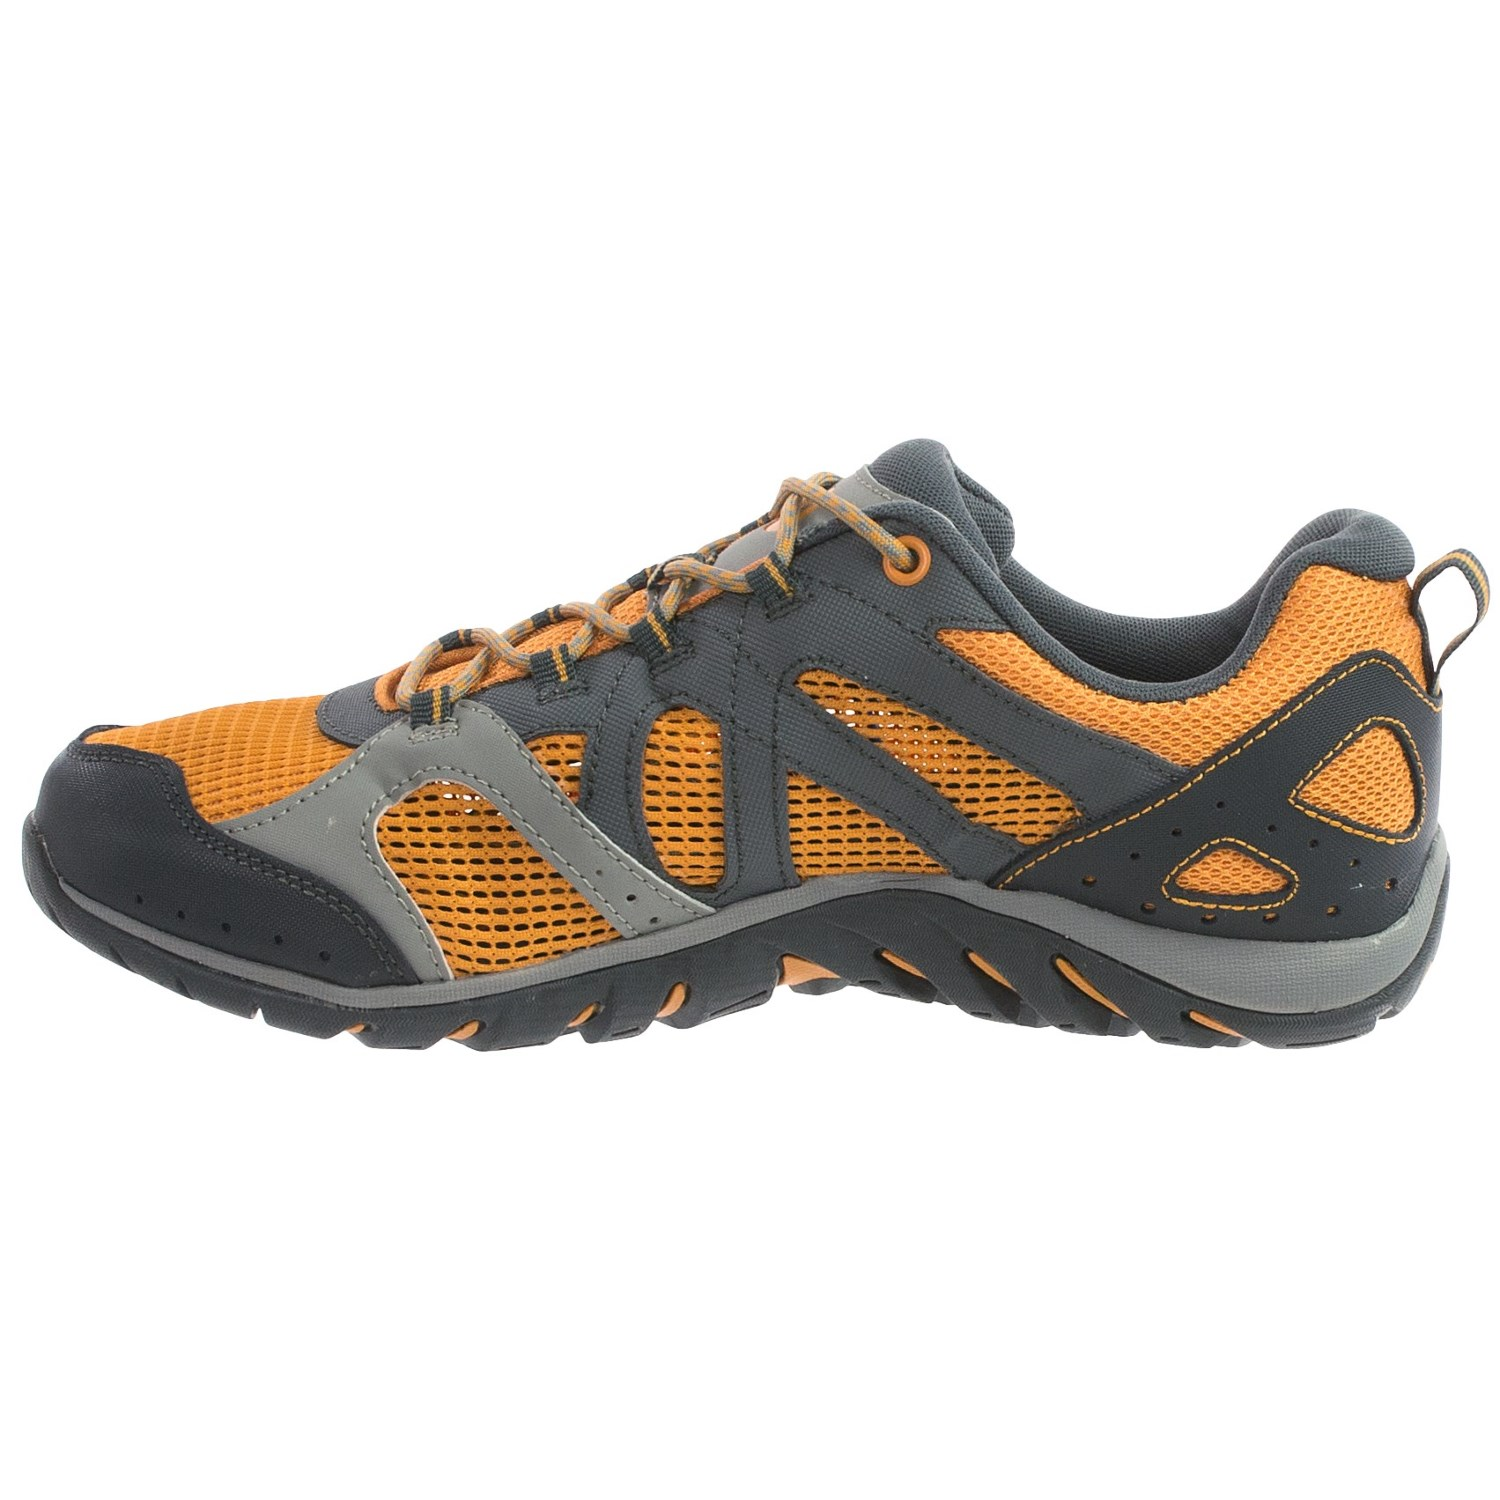 Merrell Water Shoes Black Grey Mens | Conservative Animal Welfare ...